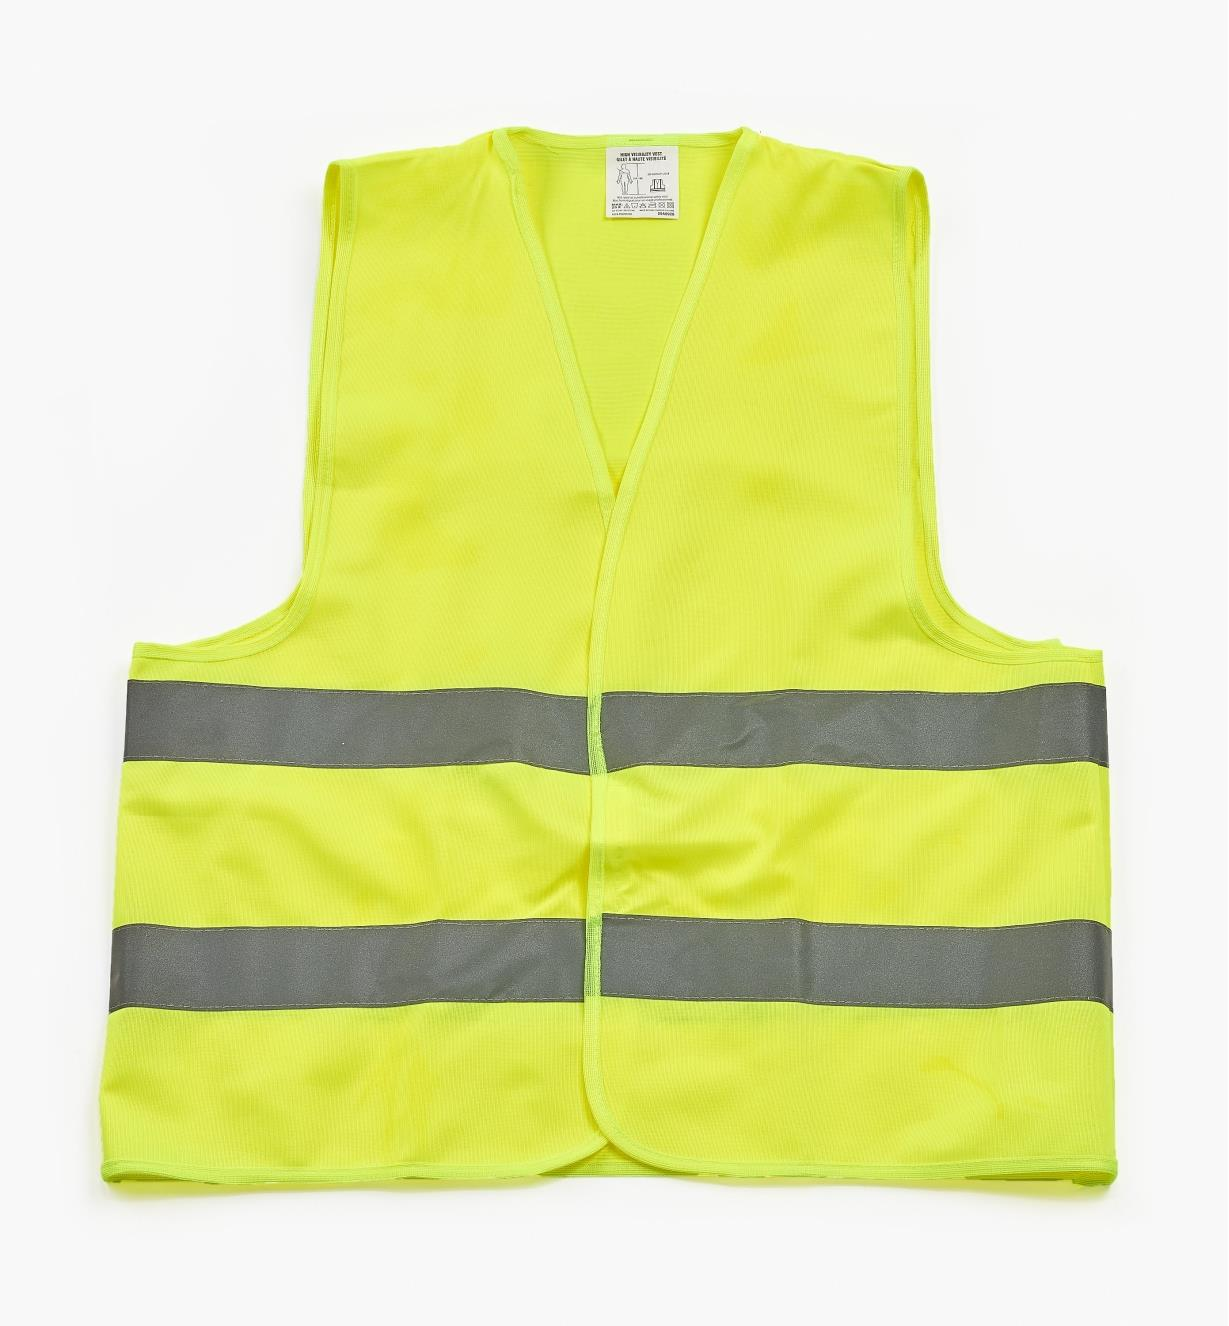 09A0924 - High-Visibility Vest, Small